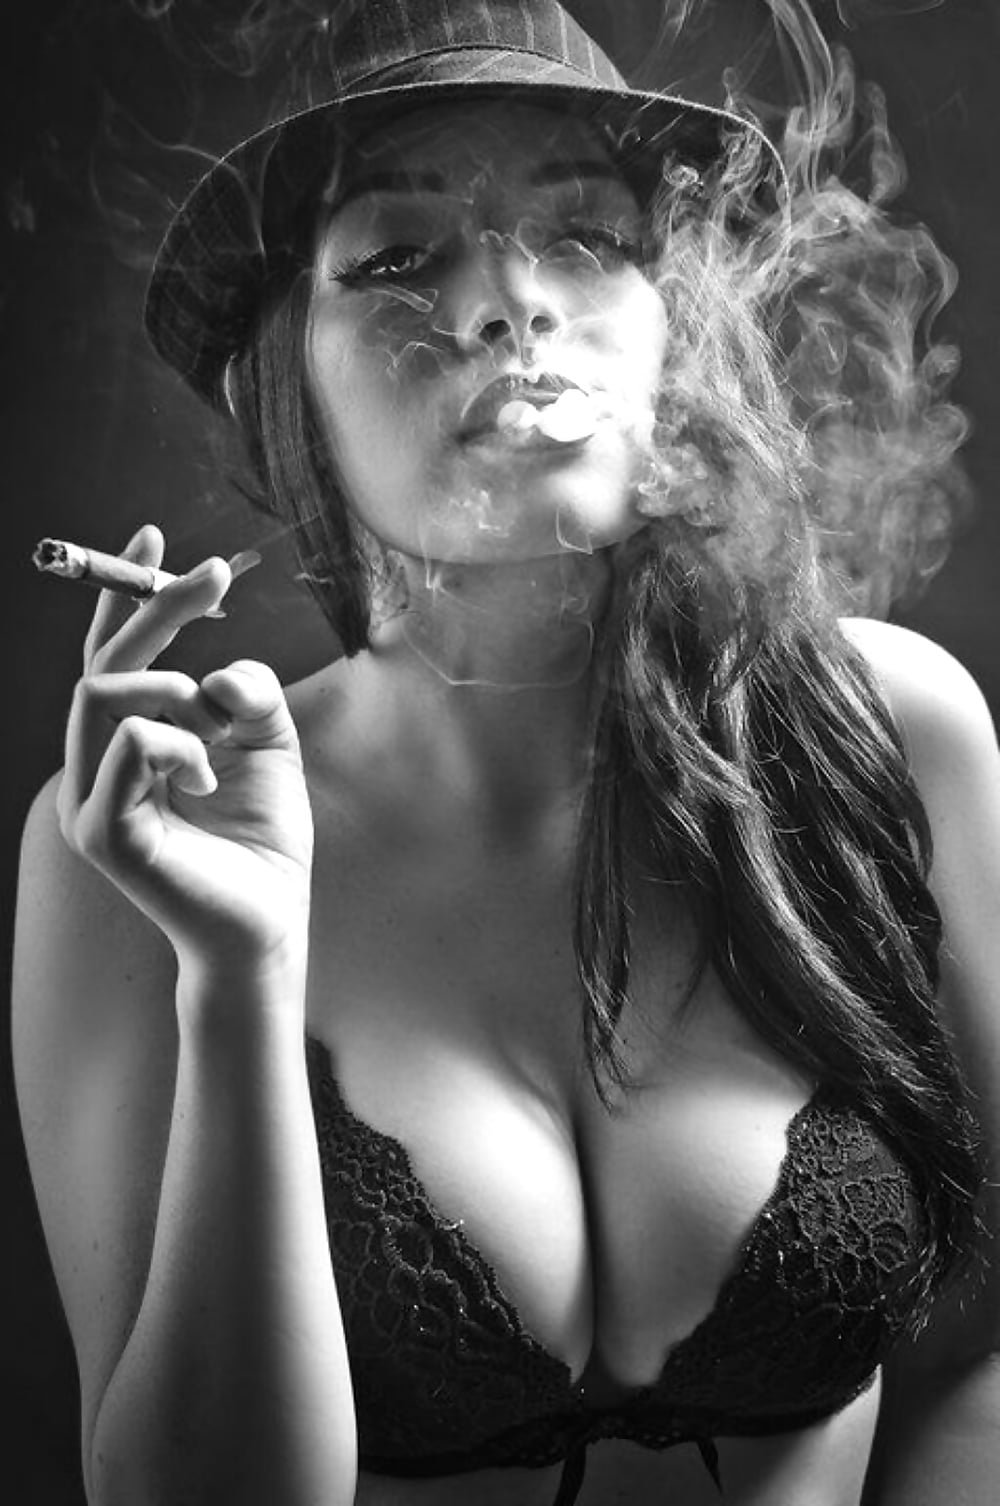 sexy-nude-pictures-of-girls-smoking-bbw-camping-threesome-pics